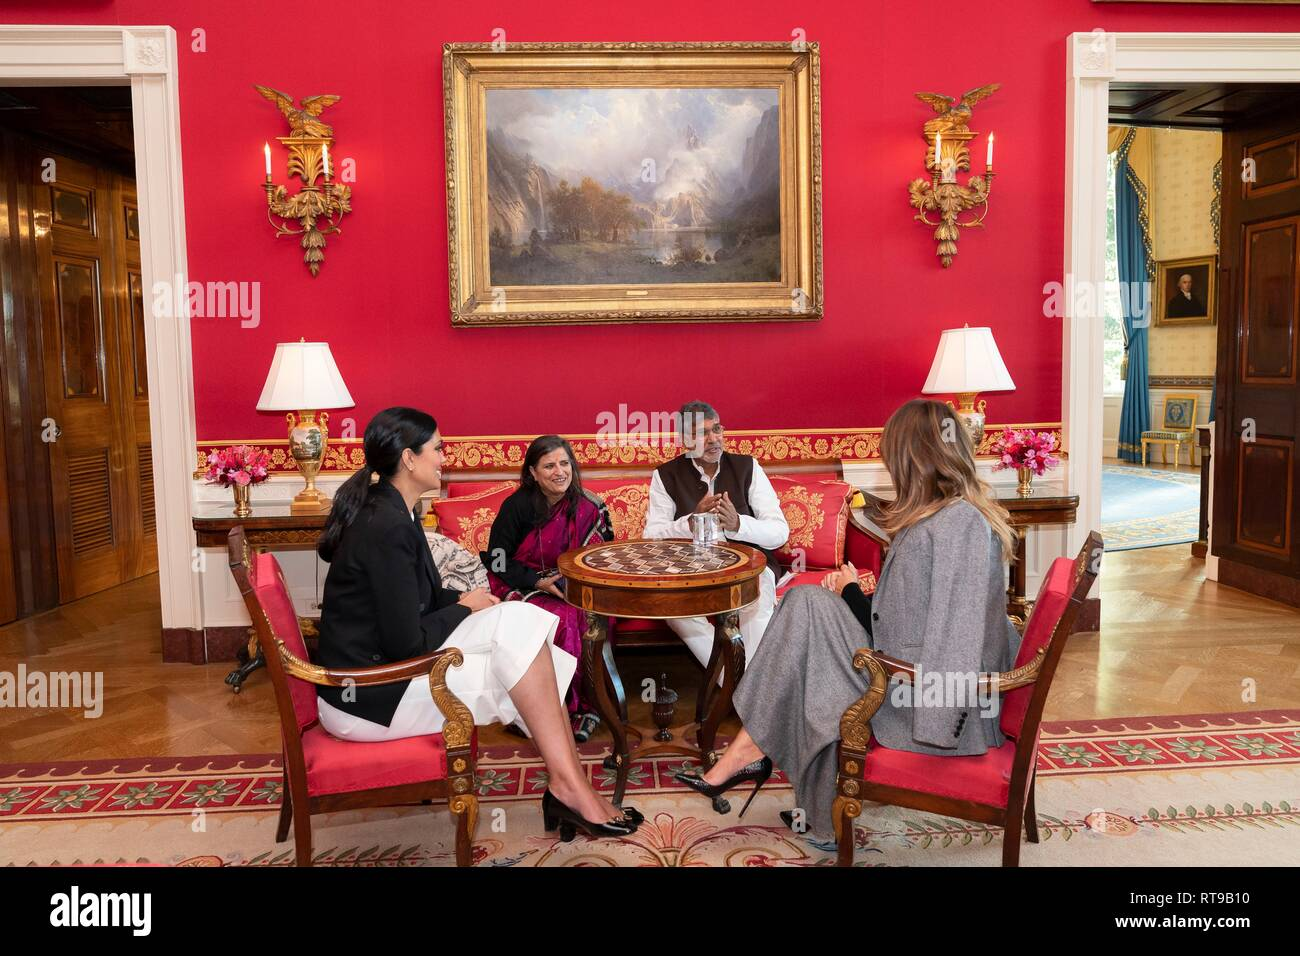 U.S. First Lady Melania Trump, right, meets with Fashion Designer Rachel Roy, left, Nobel Peace Laureate Kailash Satyarthi and his wife Sumedha Kailash in the Red Room of the White House February 25, 2019 in Washington, DC. The First Lady meets with the group to bring attention to child labor and slavery in the U.S. and abroad. - Stock Image